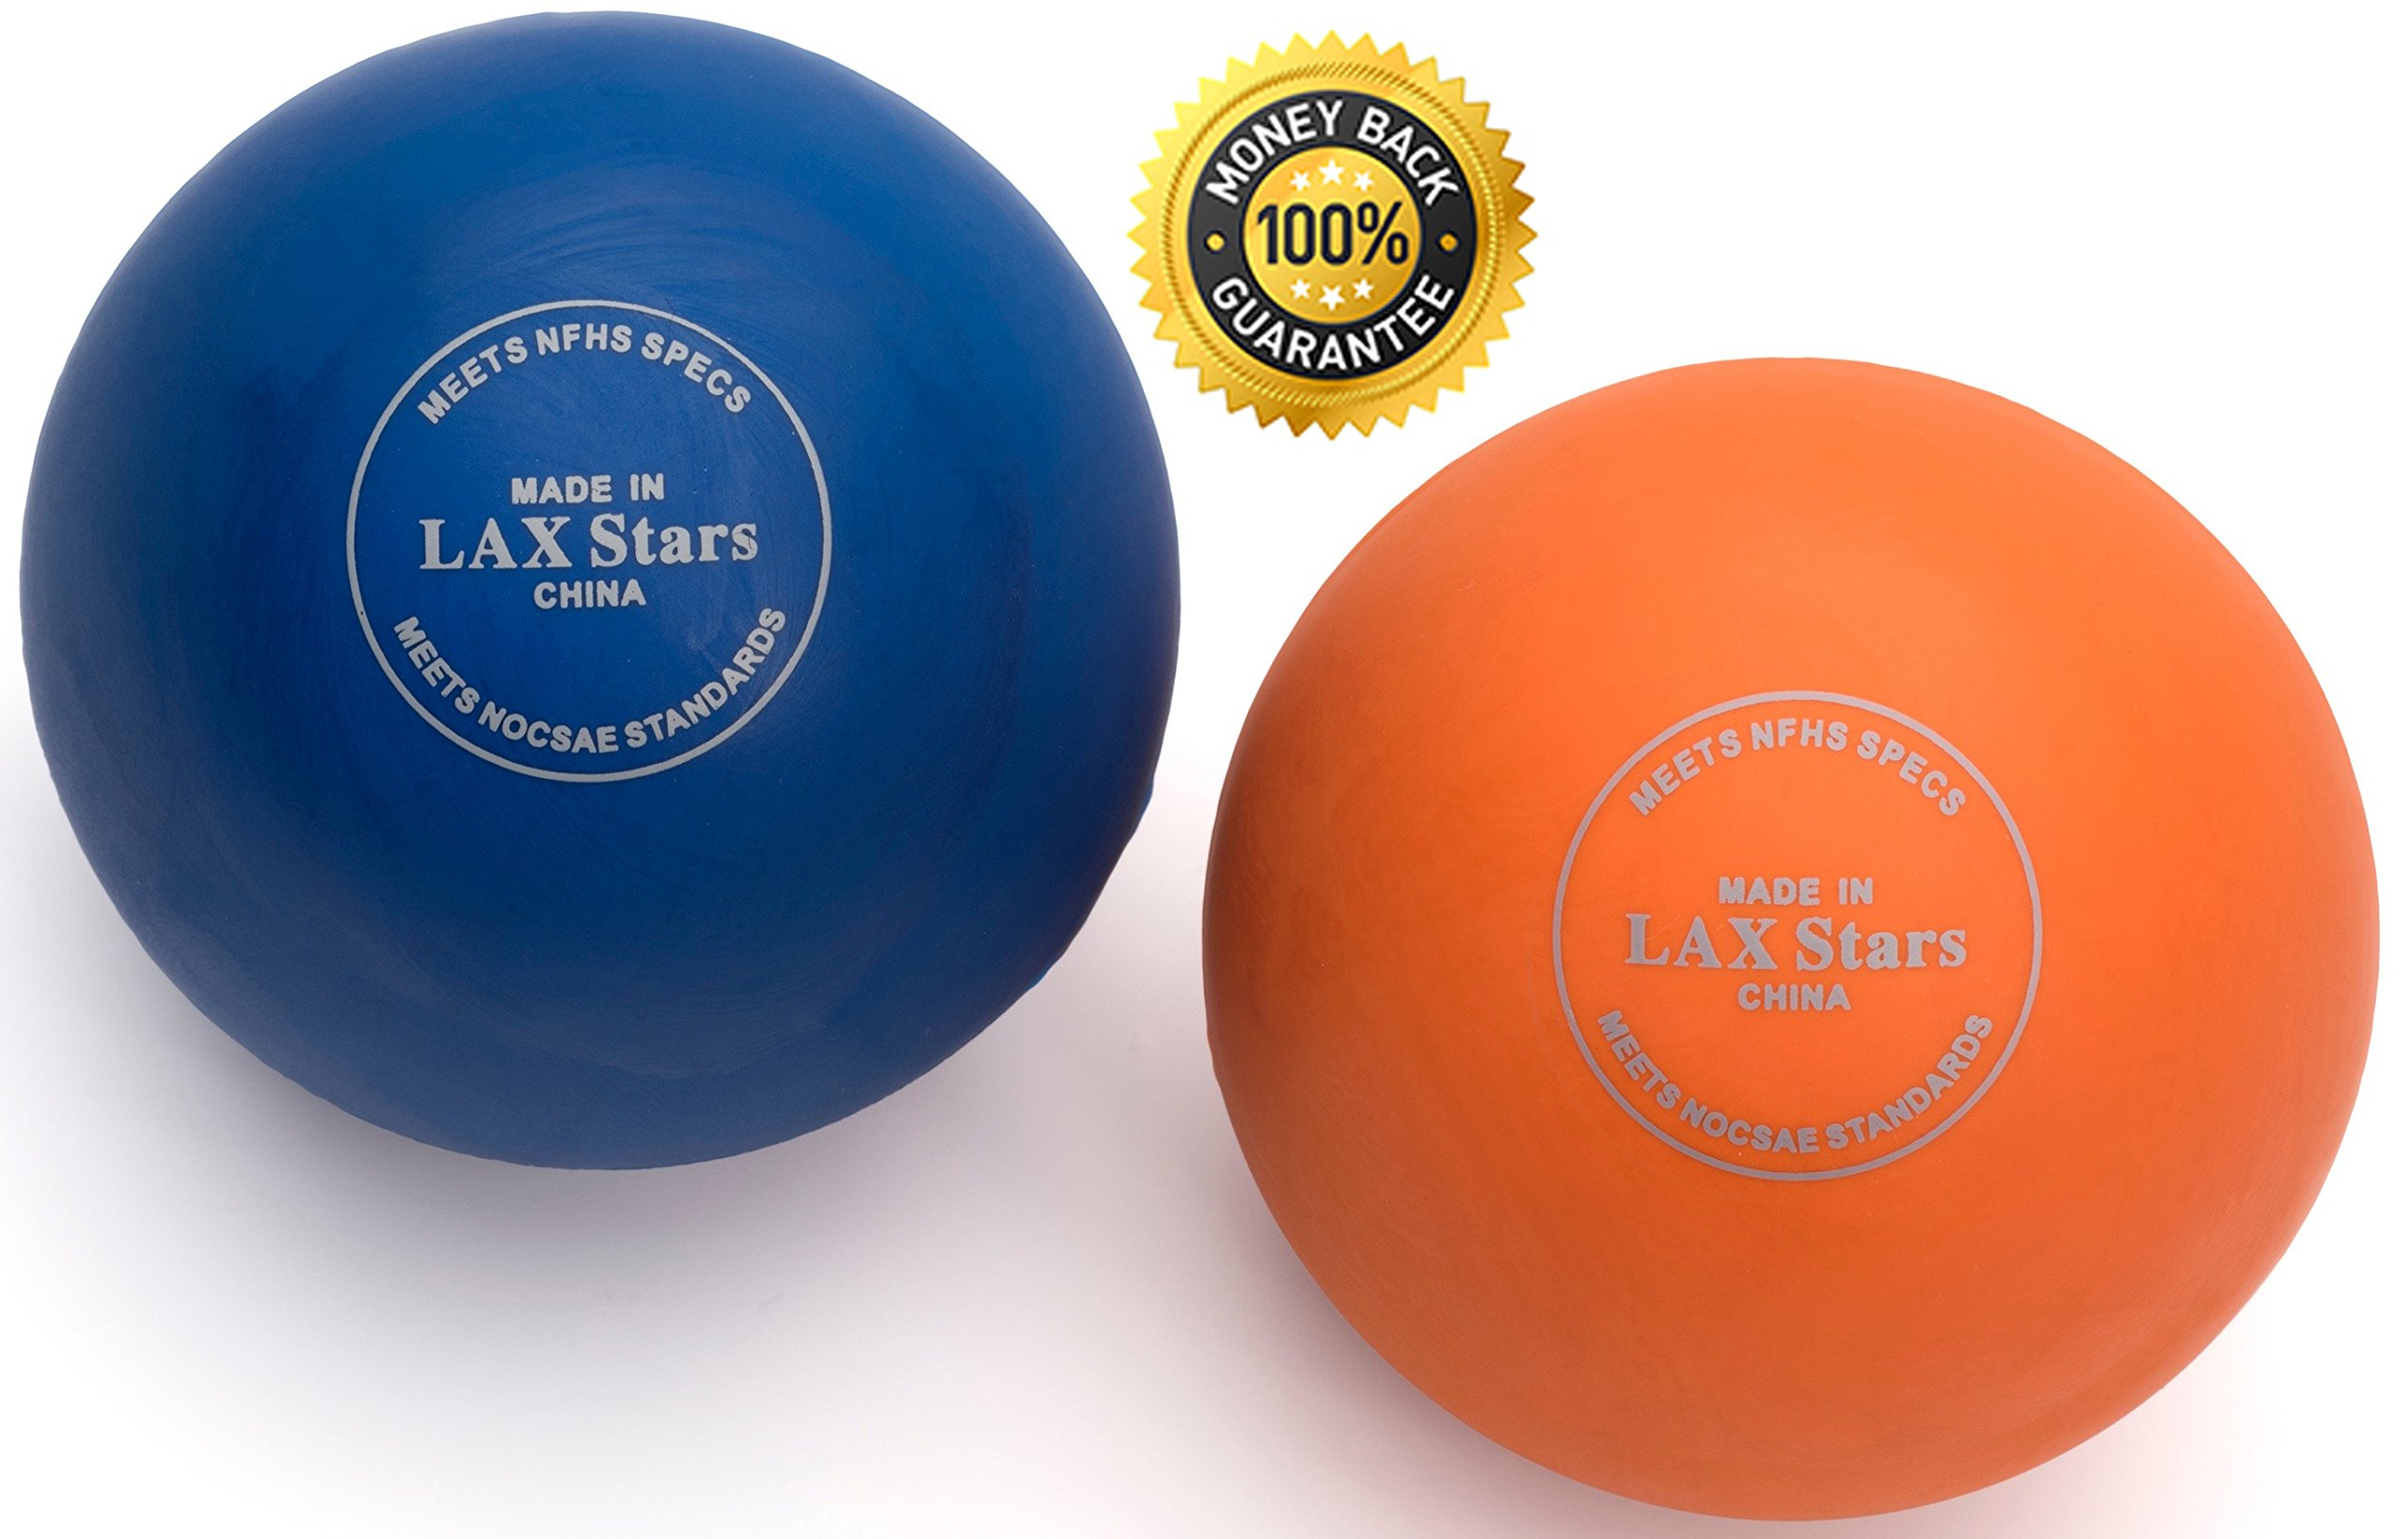 Lacrosse Balls By LAX Stars Myofascial Tension Release, Fascia Release, Massage Balls for Foot, Massage Balls for Back, Trigger Point Therapy Balls, Muscle Knots, Yoga, Pack of 2 Balls